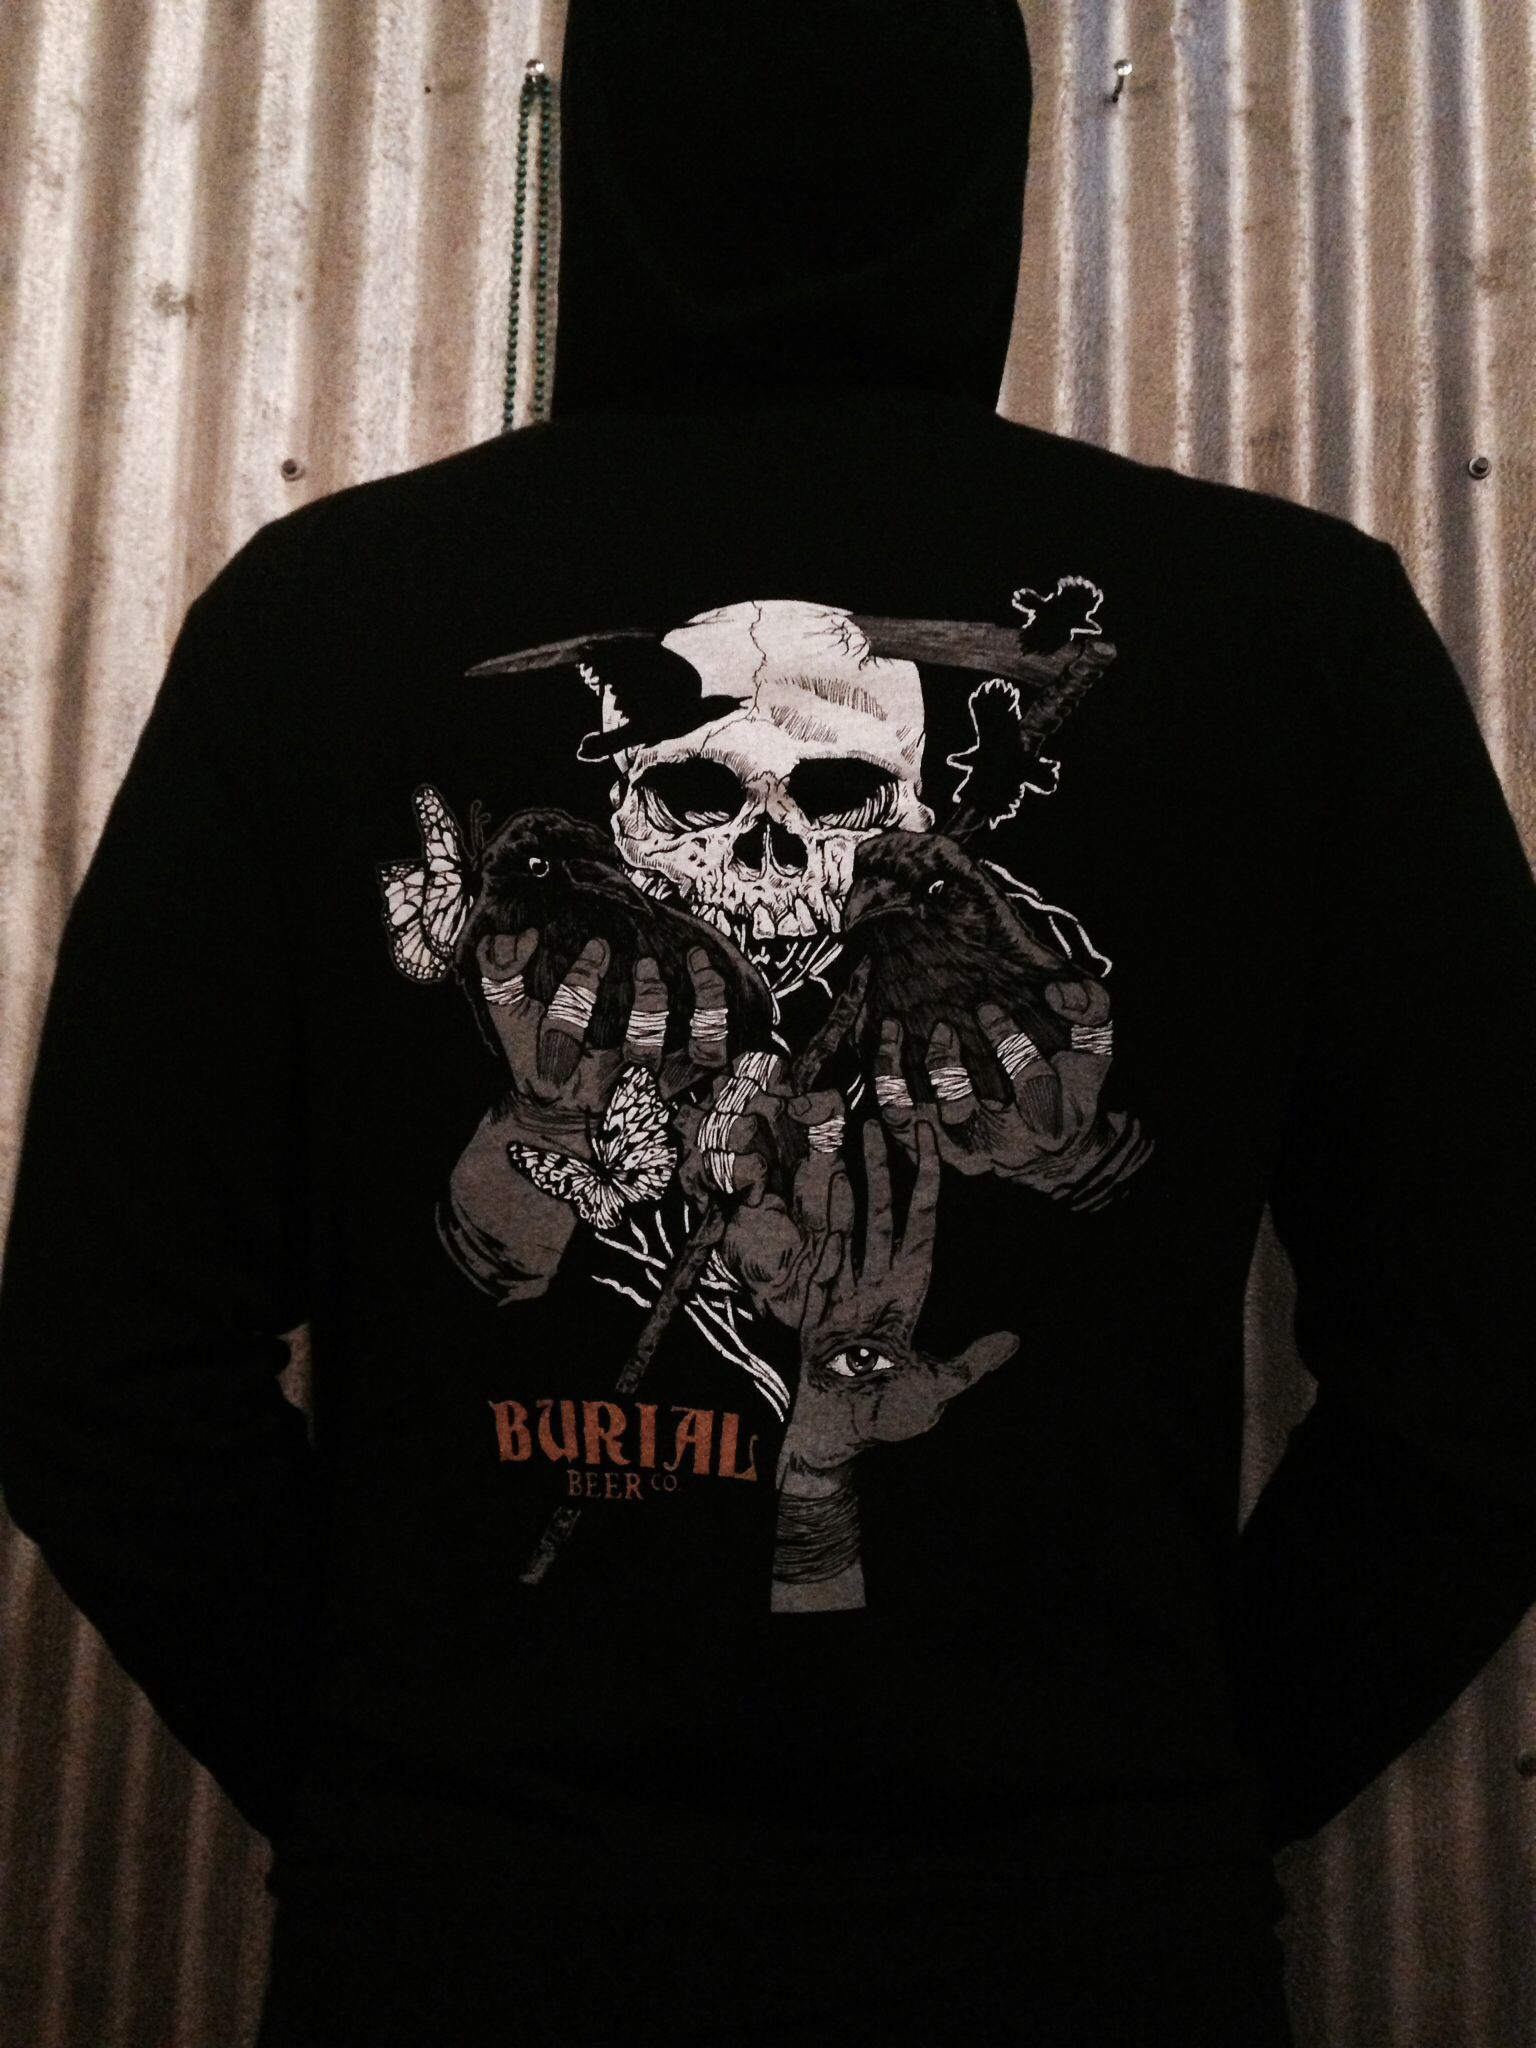 2735033c0 Picked Up This Hoodie At Burial Beer In Asheville, NC | Clothes ...